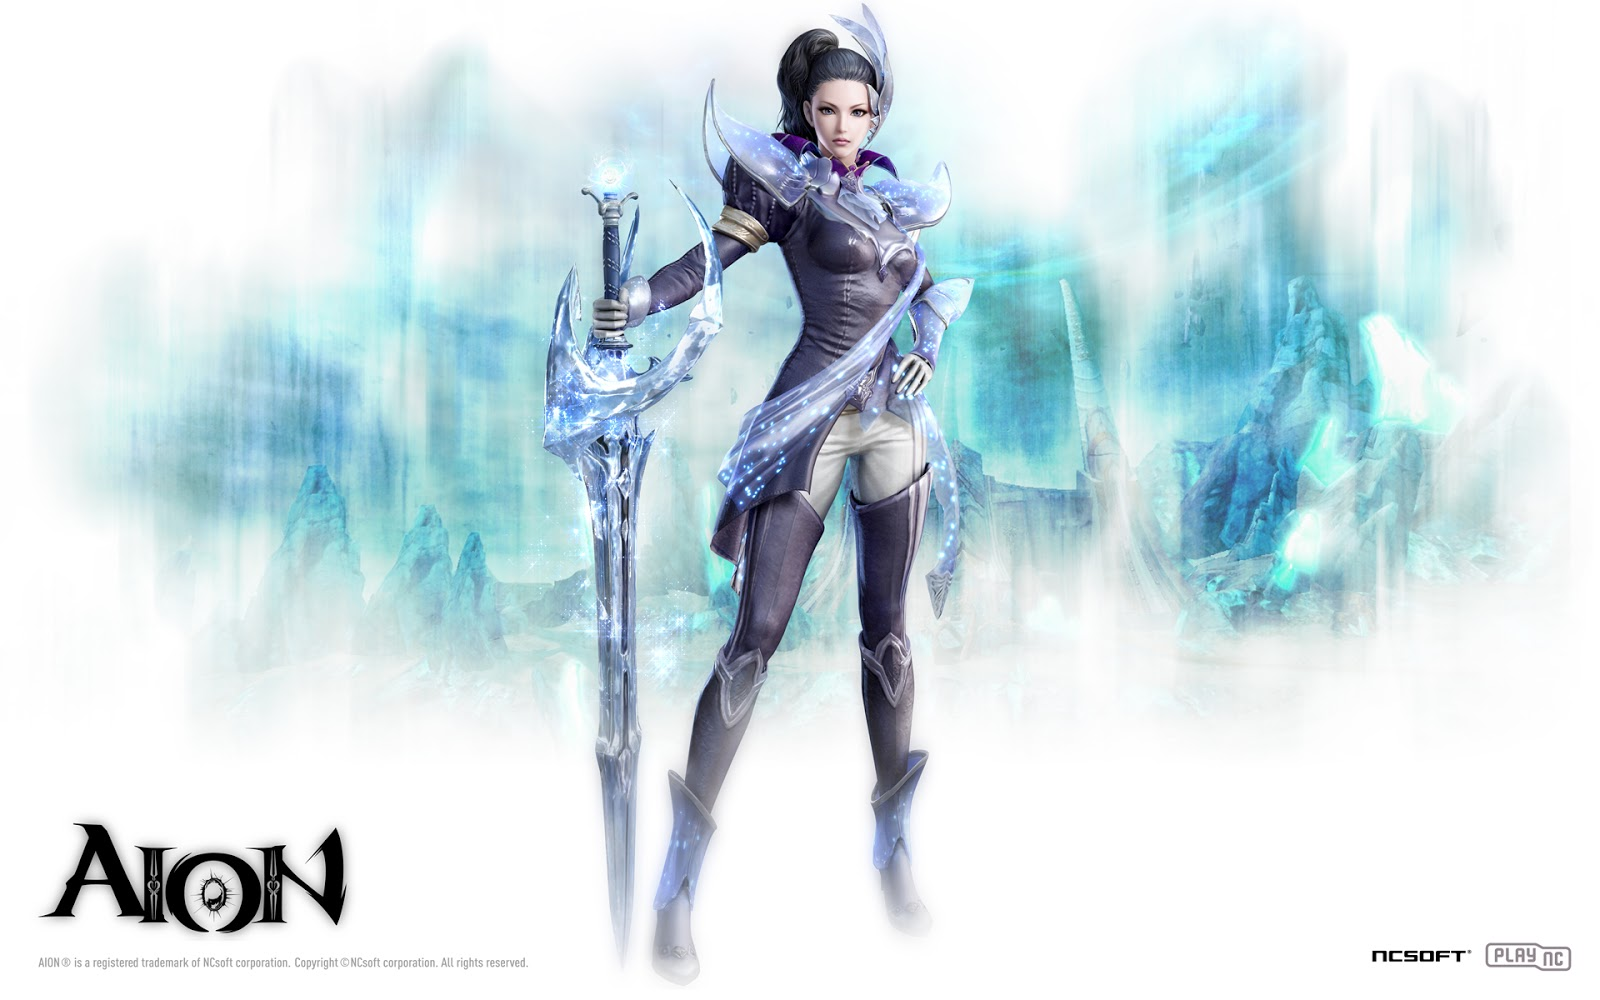 Gladiator : Aion 3.0 Game Wallpaper